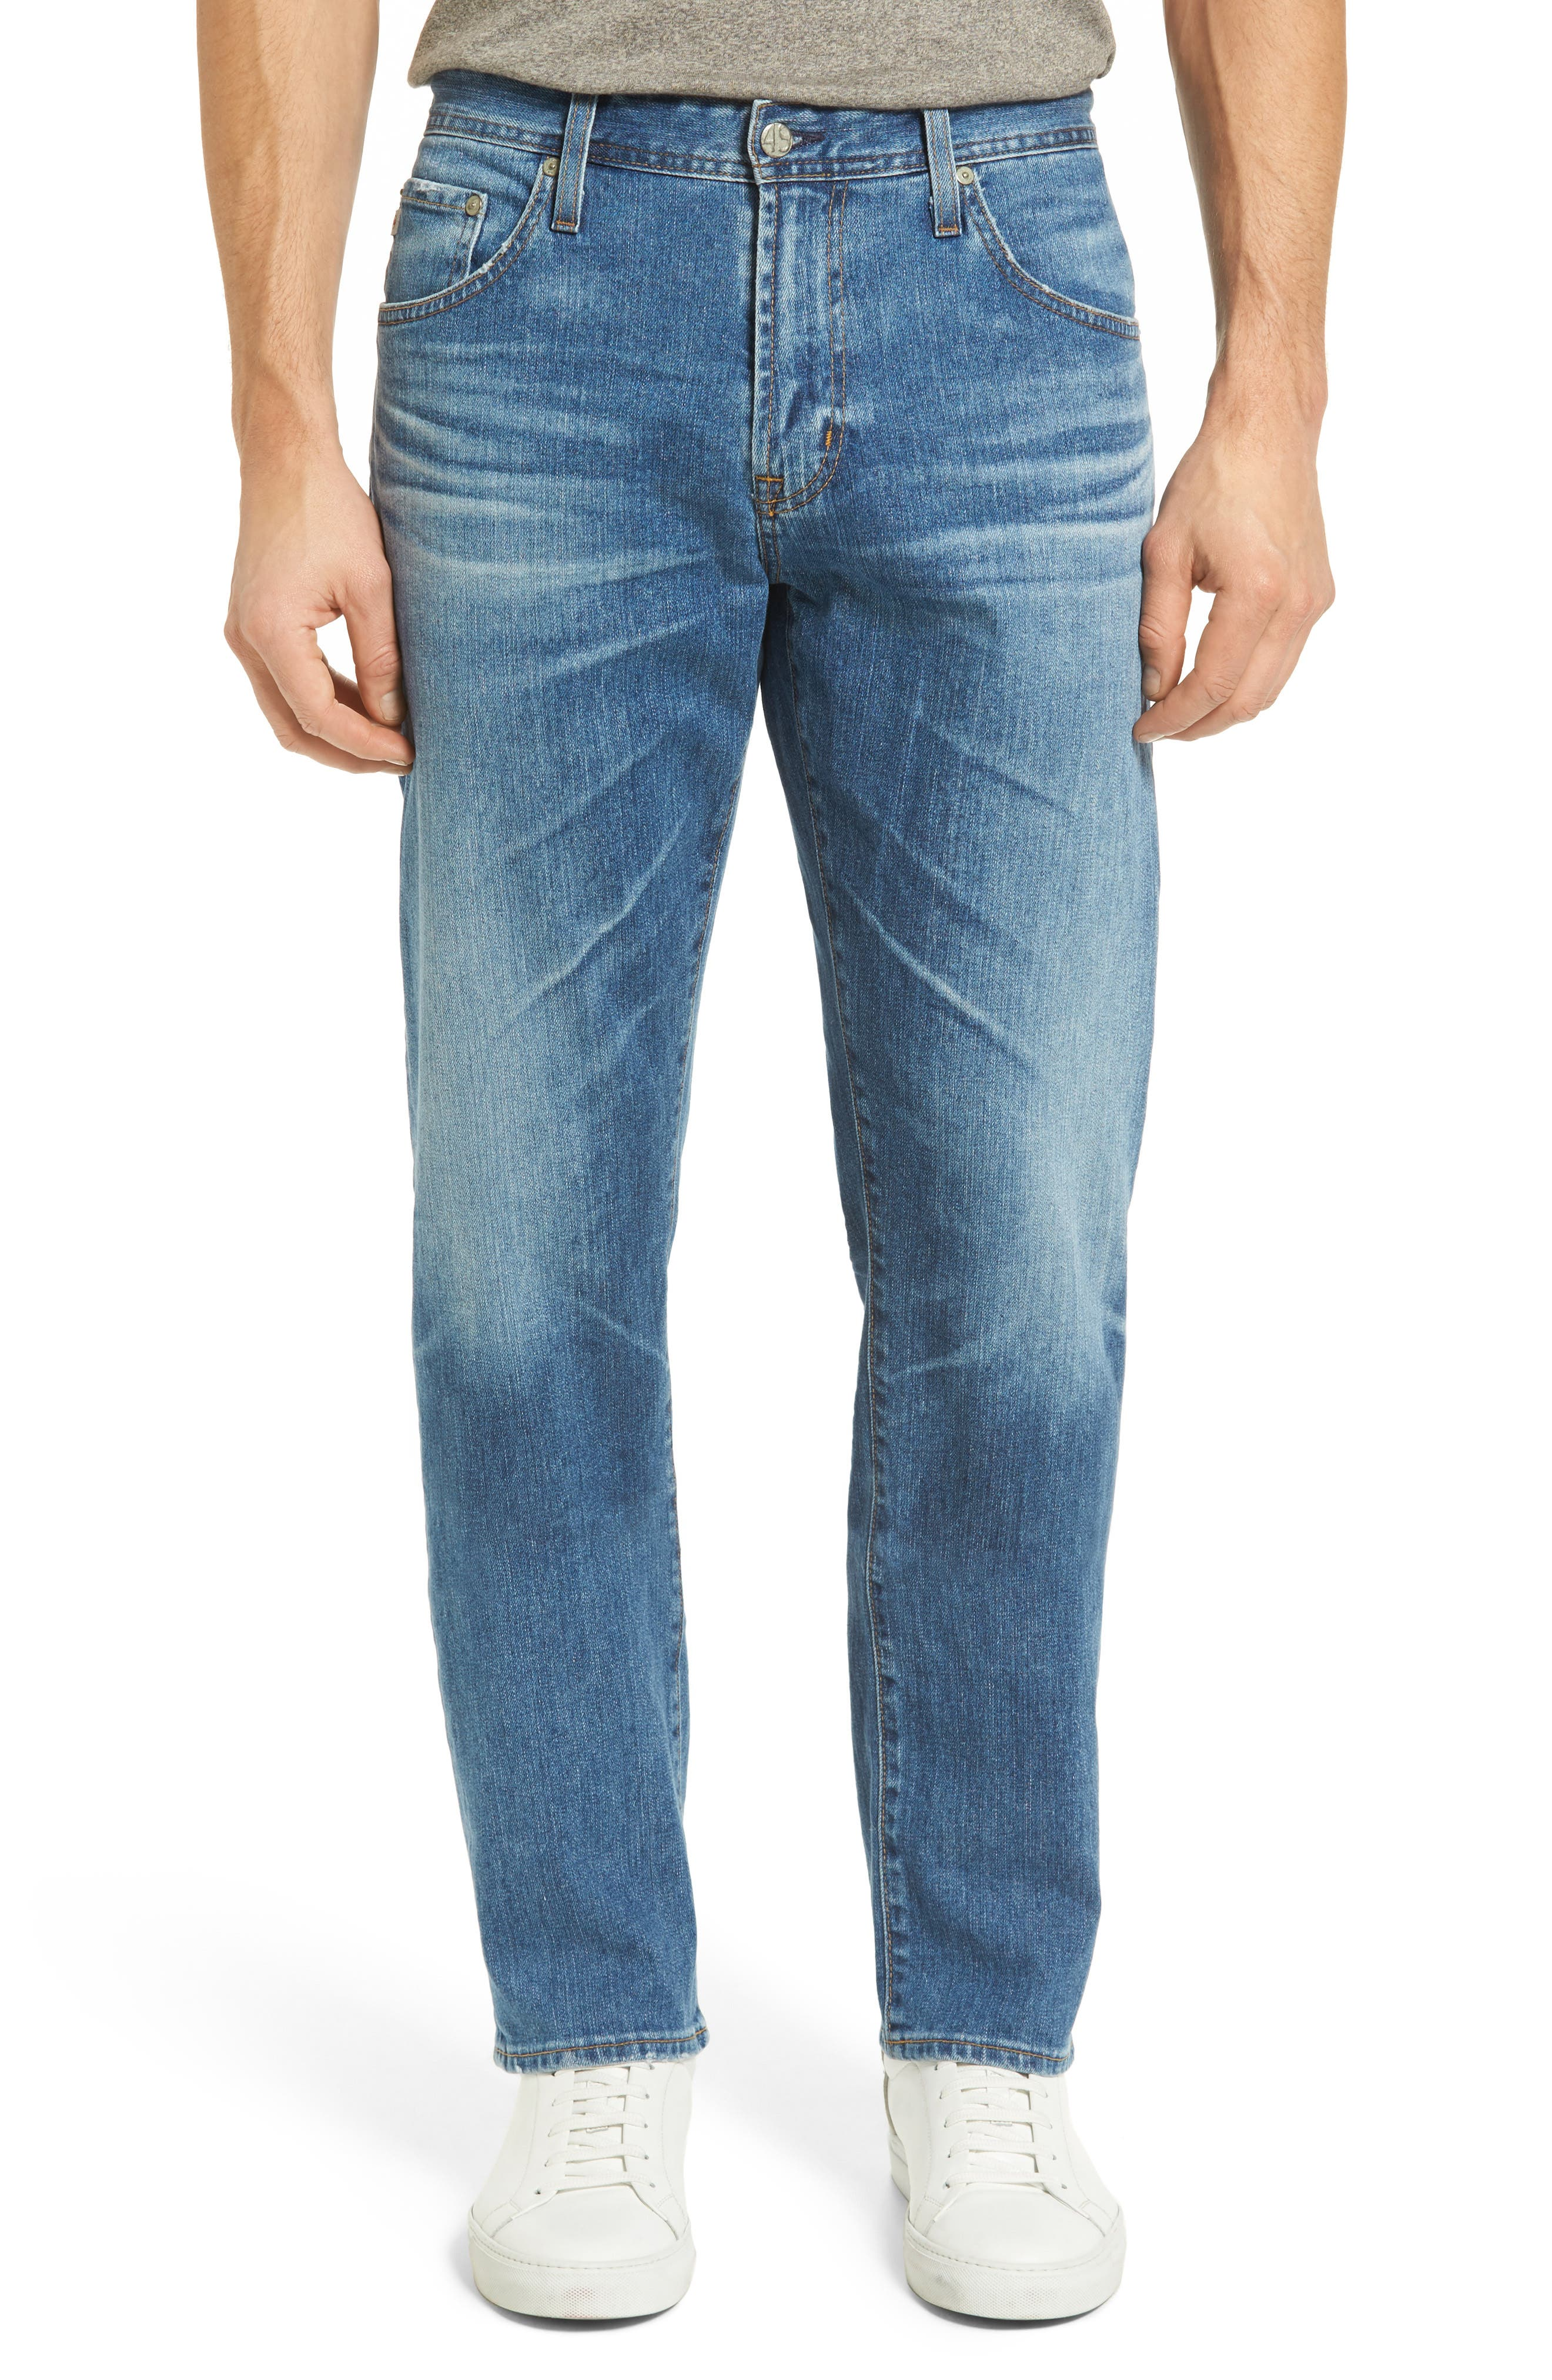 Ives Straight Leg Jeans,                             Main thumbnail 1, color,                             16 Years Broken Ground